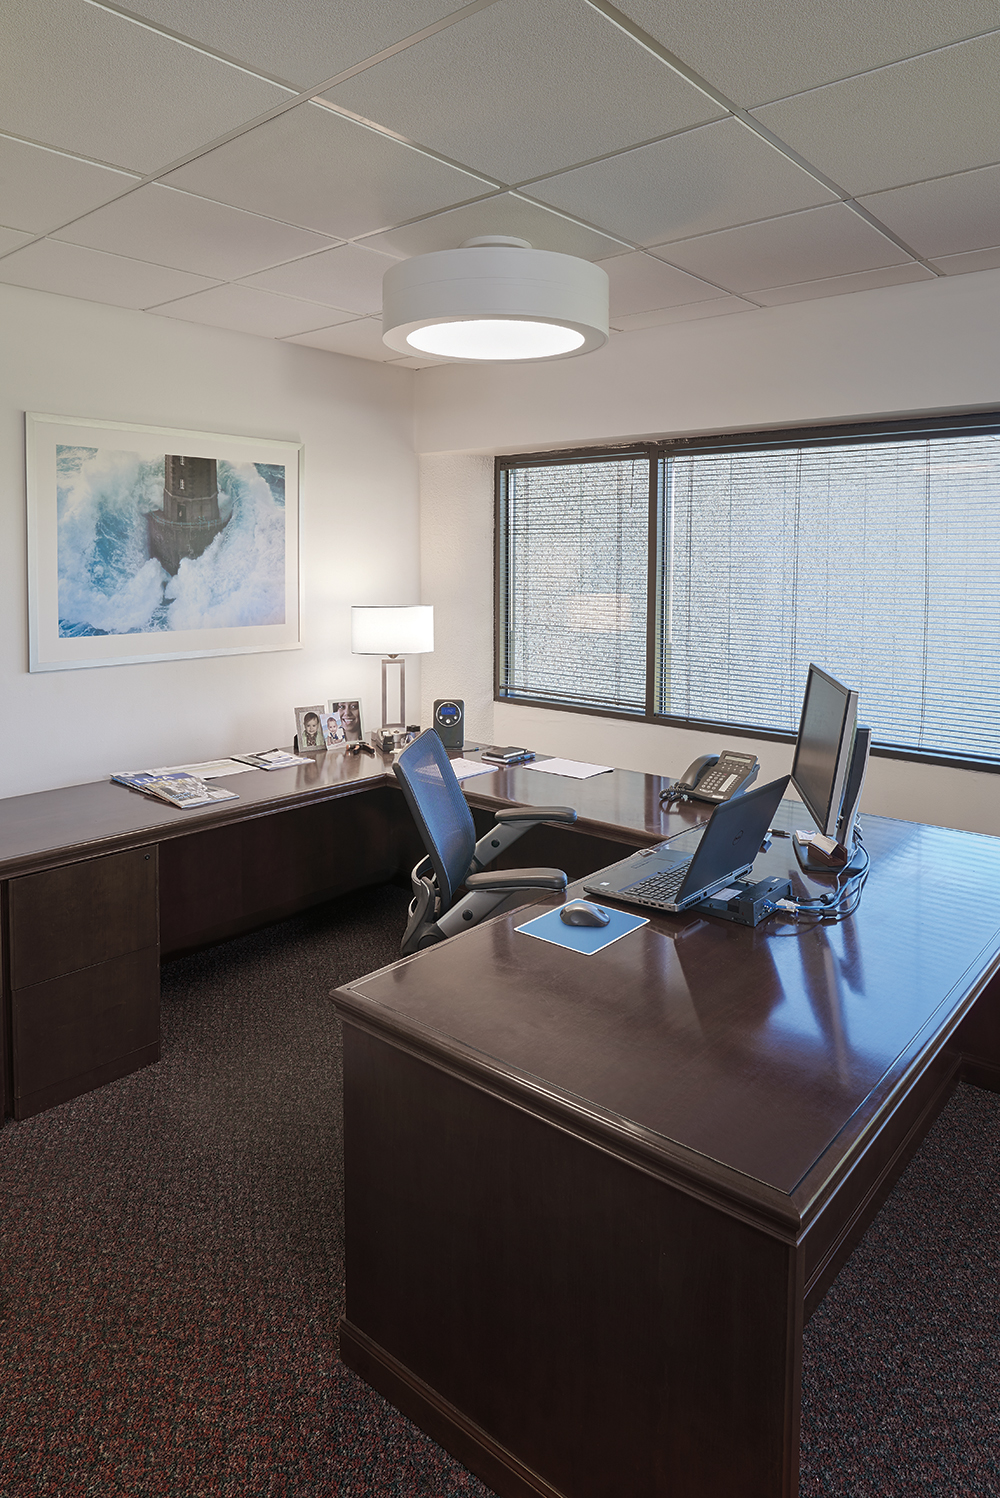 Omnience office lighting fixtures above a desk in a modern private office design.